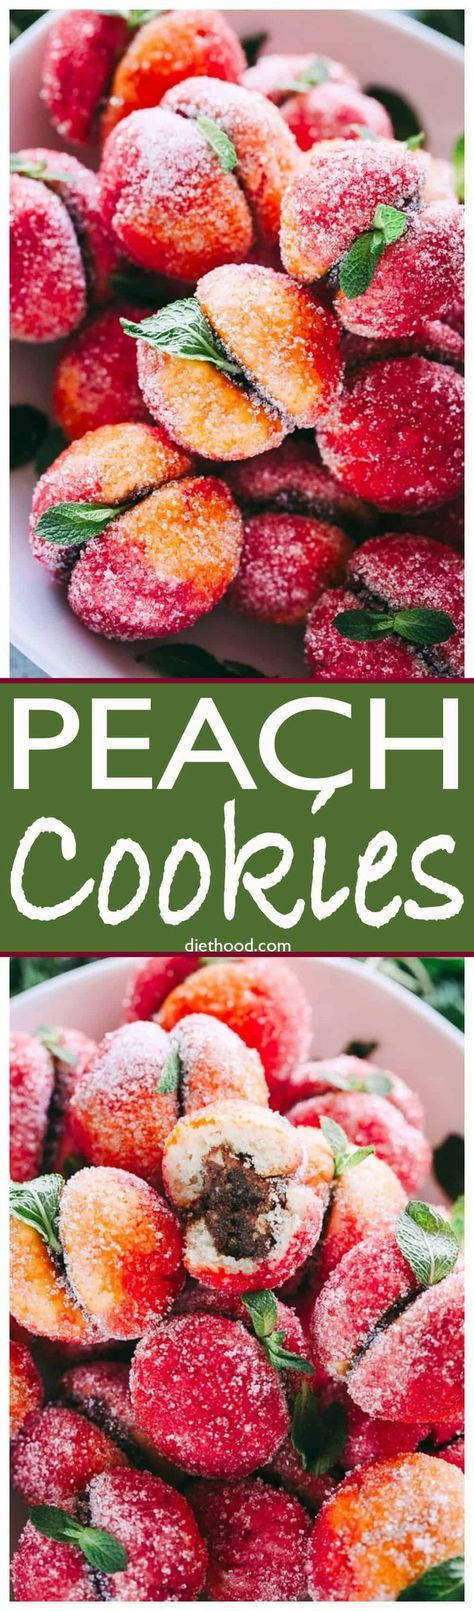 Peach Cookies - Nutella filled sandwich cookies that look like peaches! These #cookies are a show stopper and will look beautiful on your #Holiday cookie tray. #Christmas via @diethood